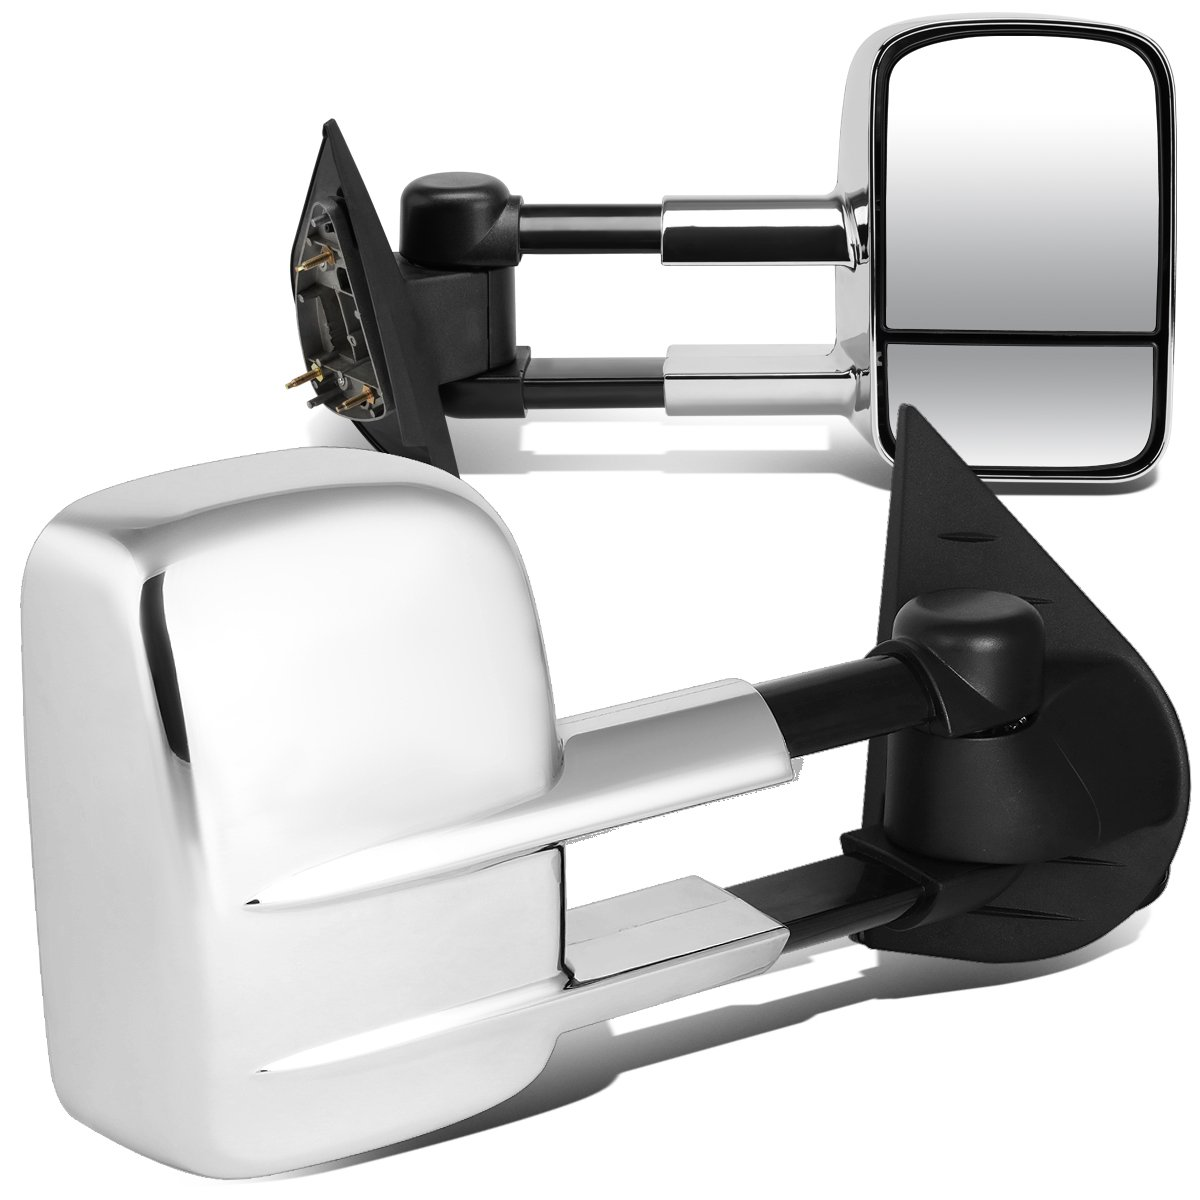 For Silverado/Sierra GMT900 Pair of Telescopic Extended Arm Rear View Manual Folding Towing Side Mirror (Chrome)